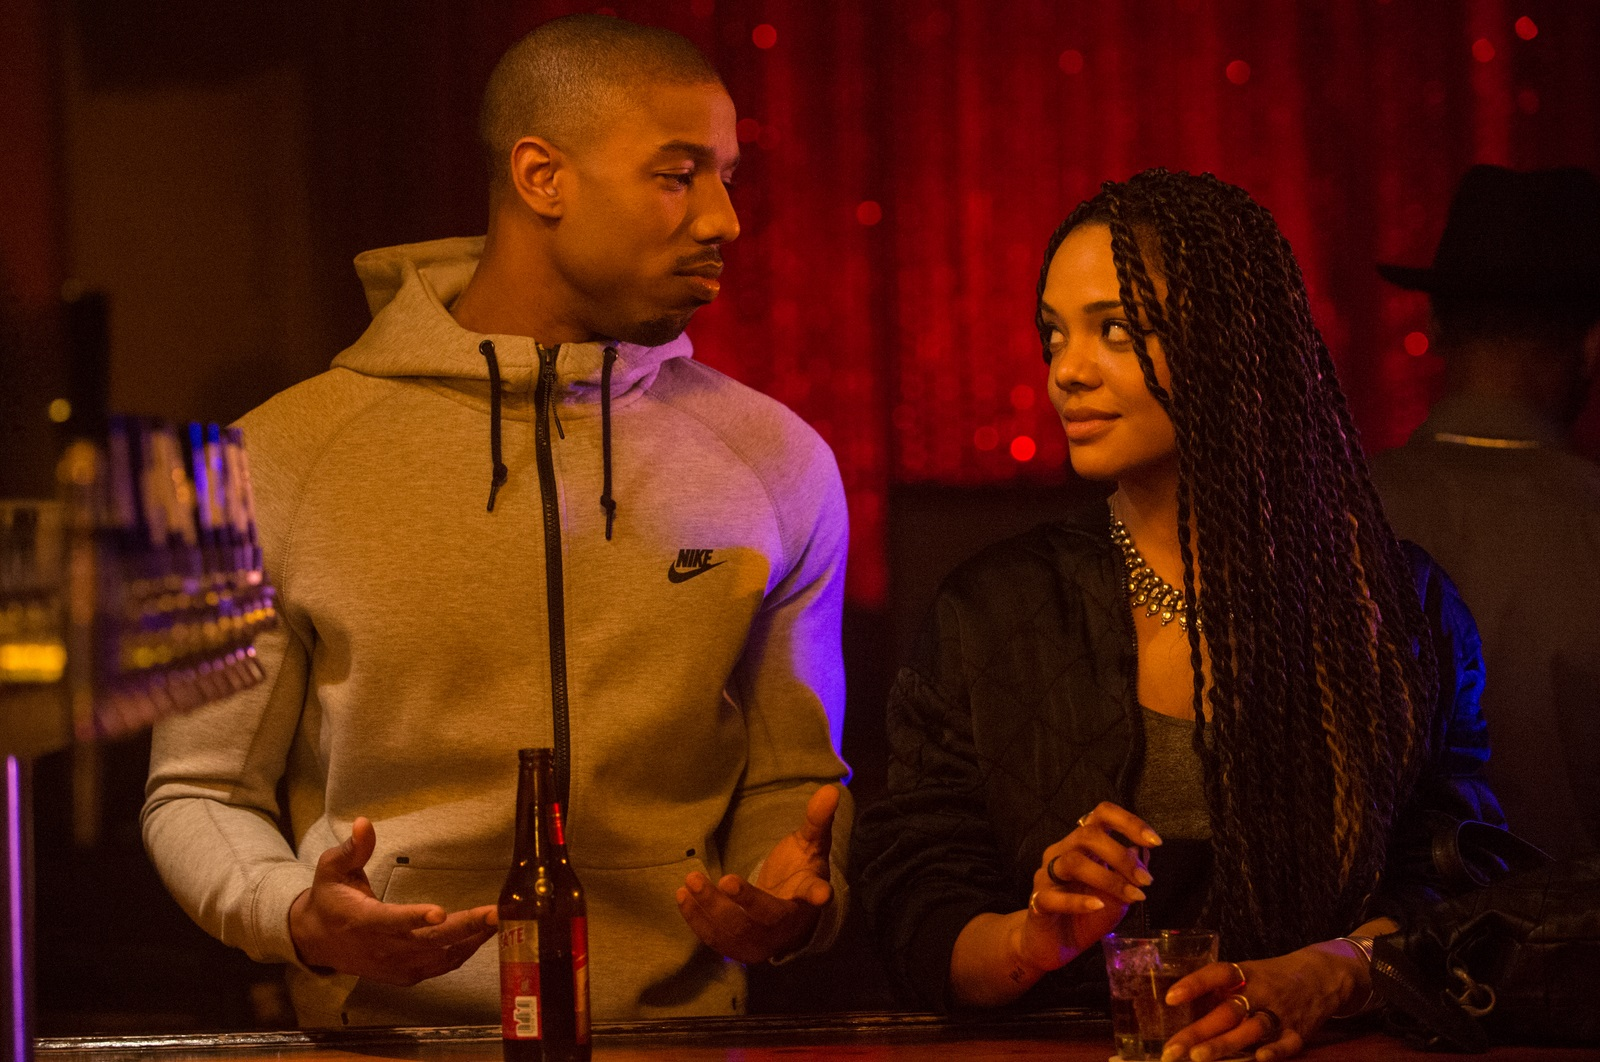 Creed - L'Héritage de Rocky Balboa : Photo Michael B. Jordan, Tessa Thompson